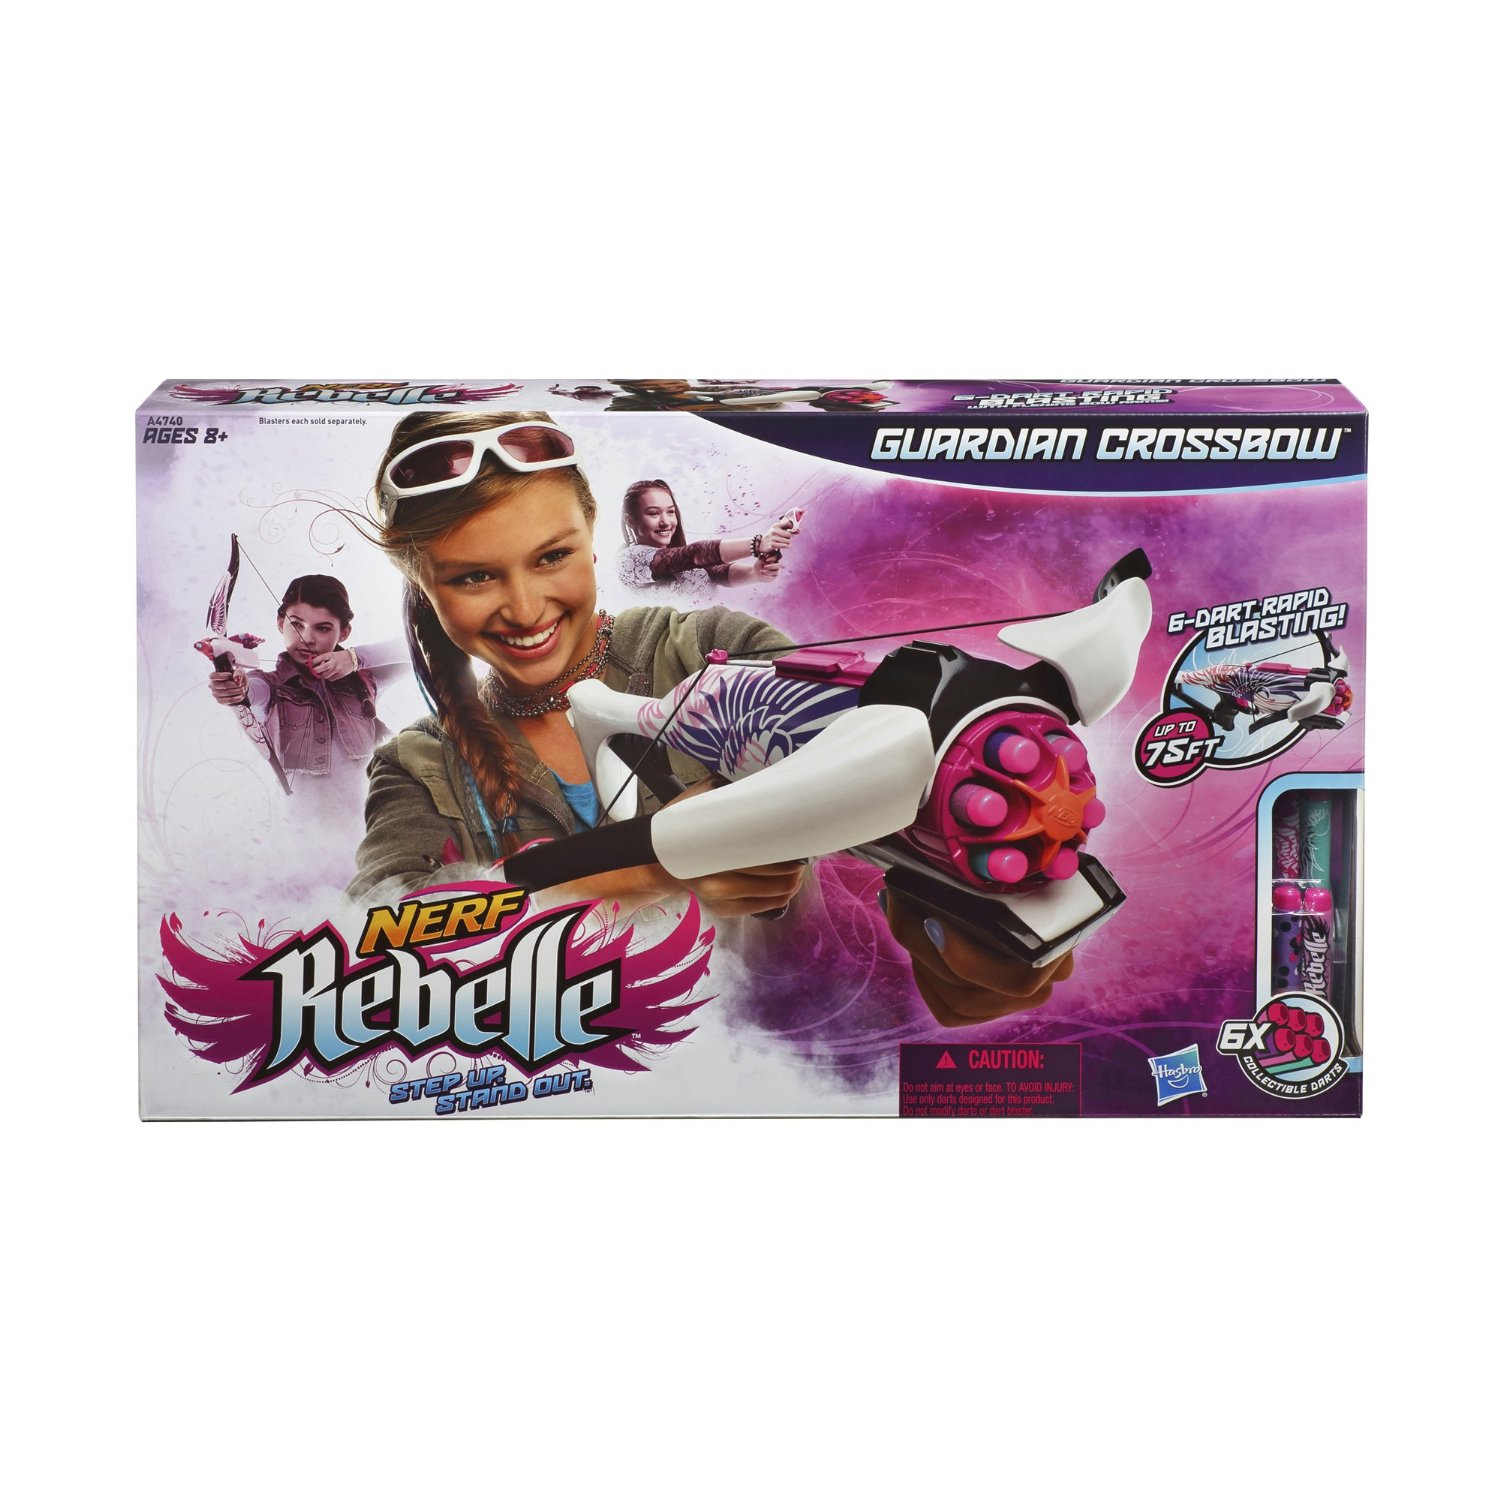 Nerf Rebelle Guardian Crossbow